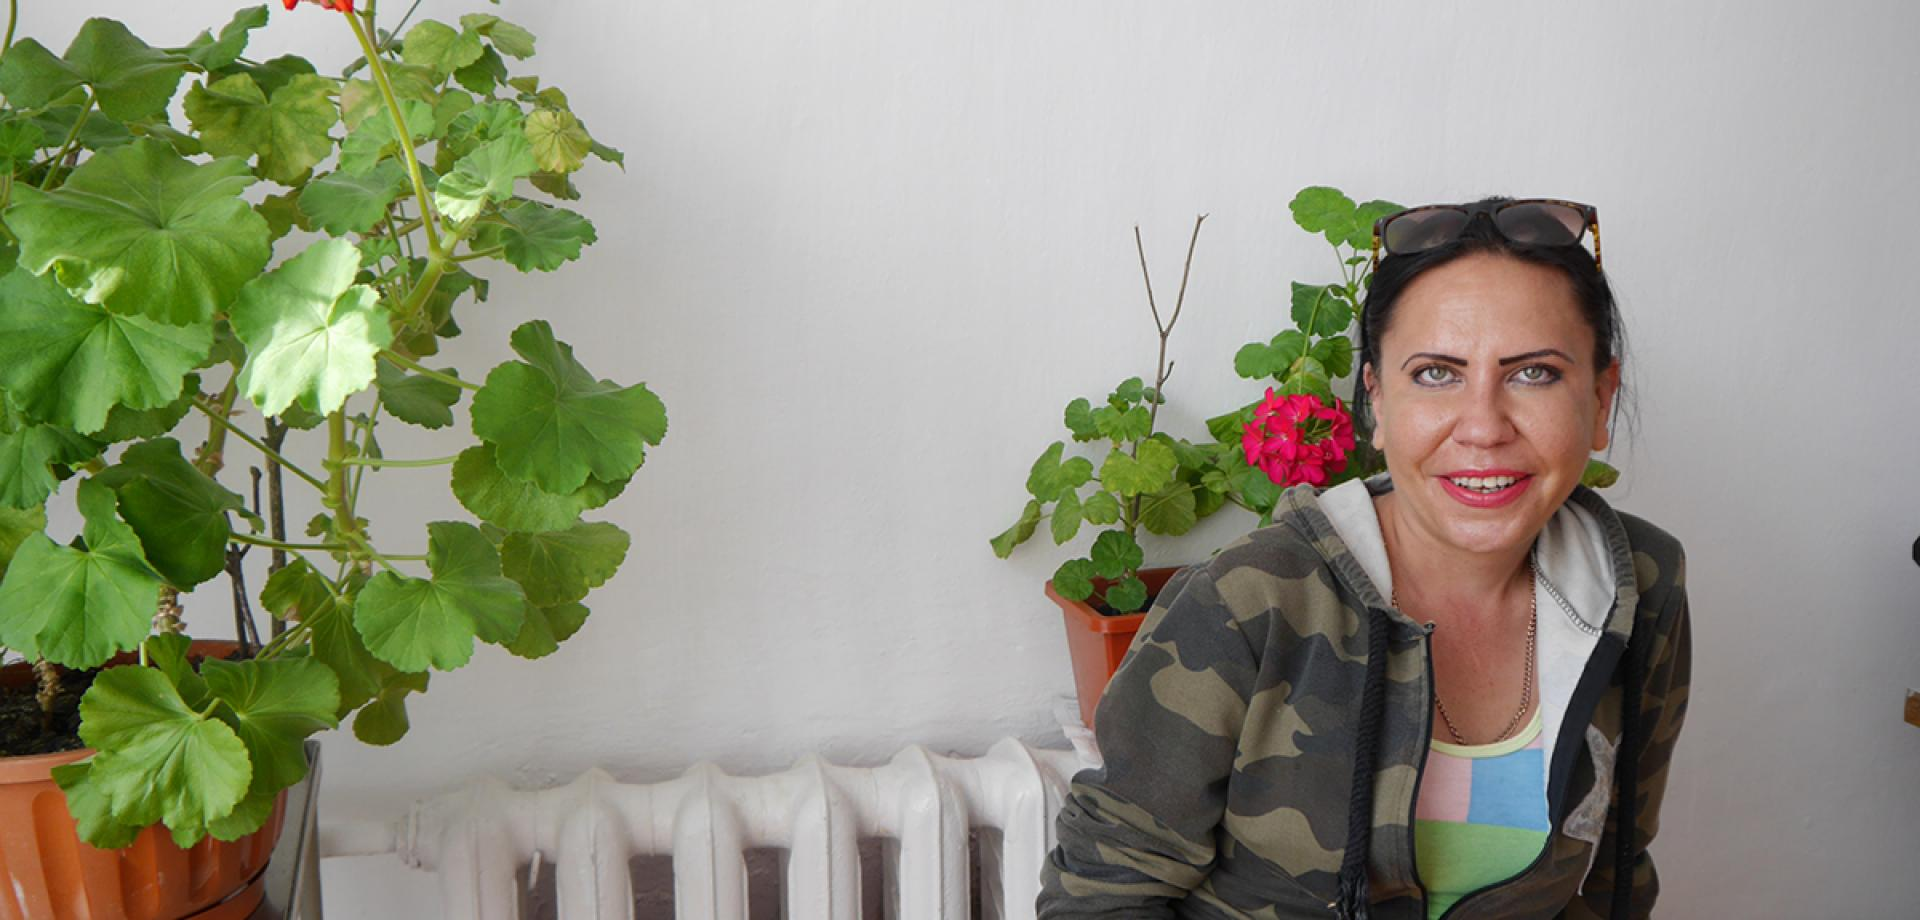 TB patient Svetlana is treated by MSF in Ukraine